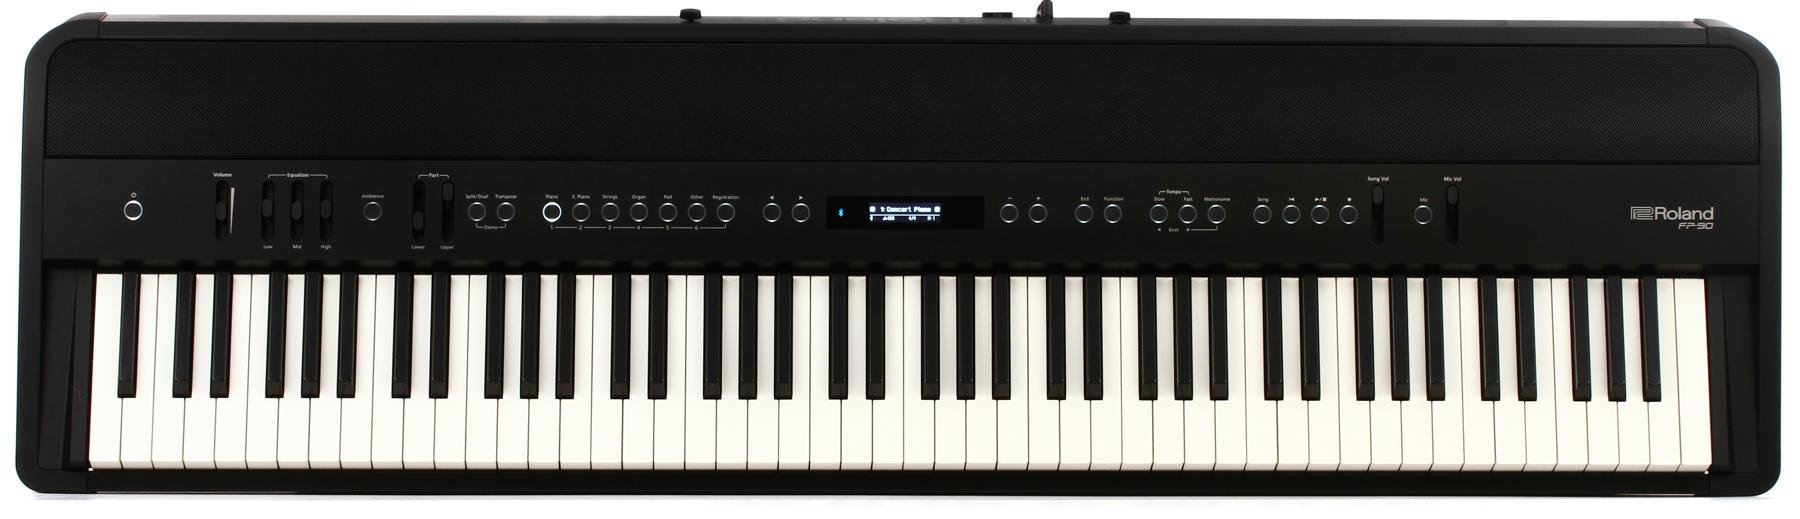 Roland Fp 90 Digital Piano Black Sweetwater